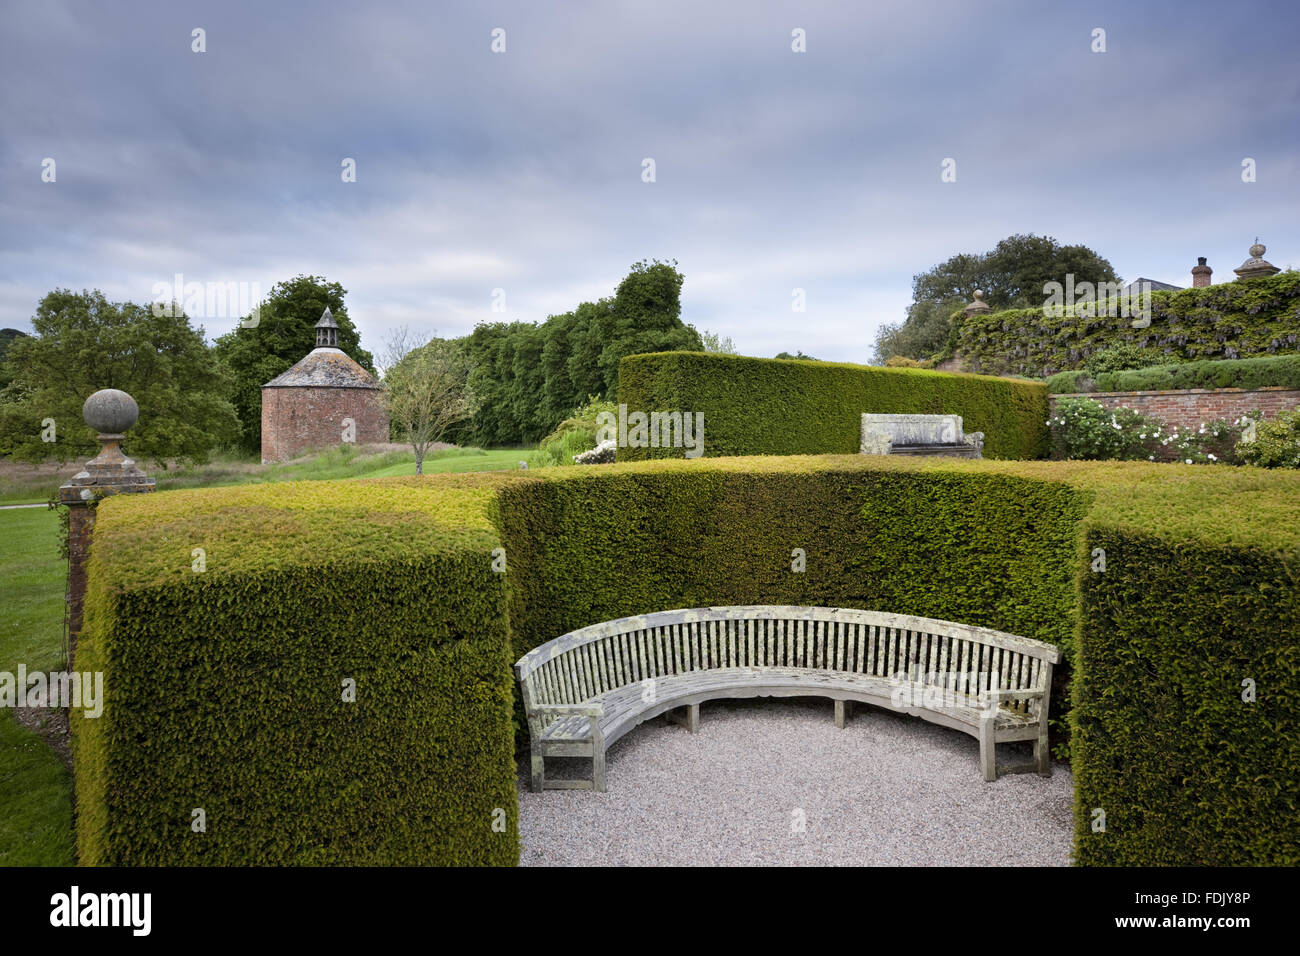 Curved bench enclosed by a hedge, near the Terrace Garden at Antony, Cornwall. The circular eighteenth-century dovecote - Stock Image